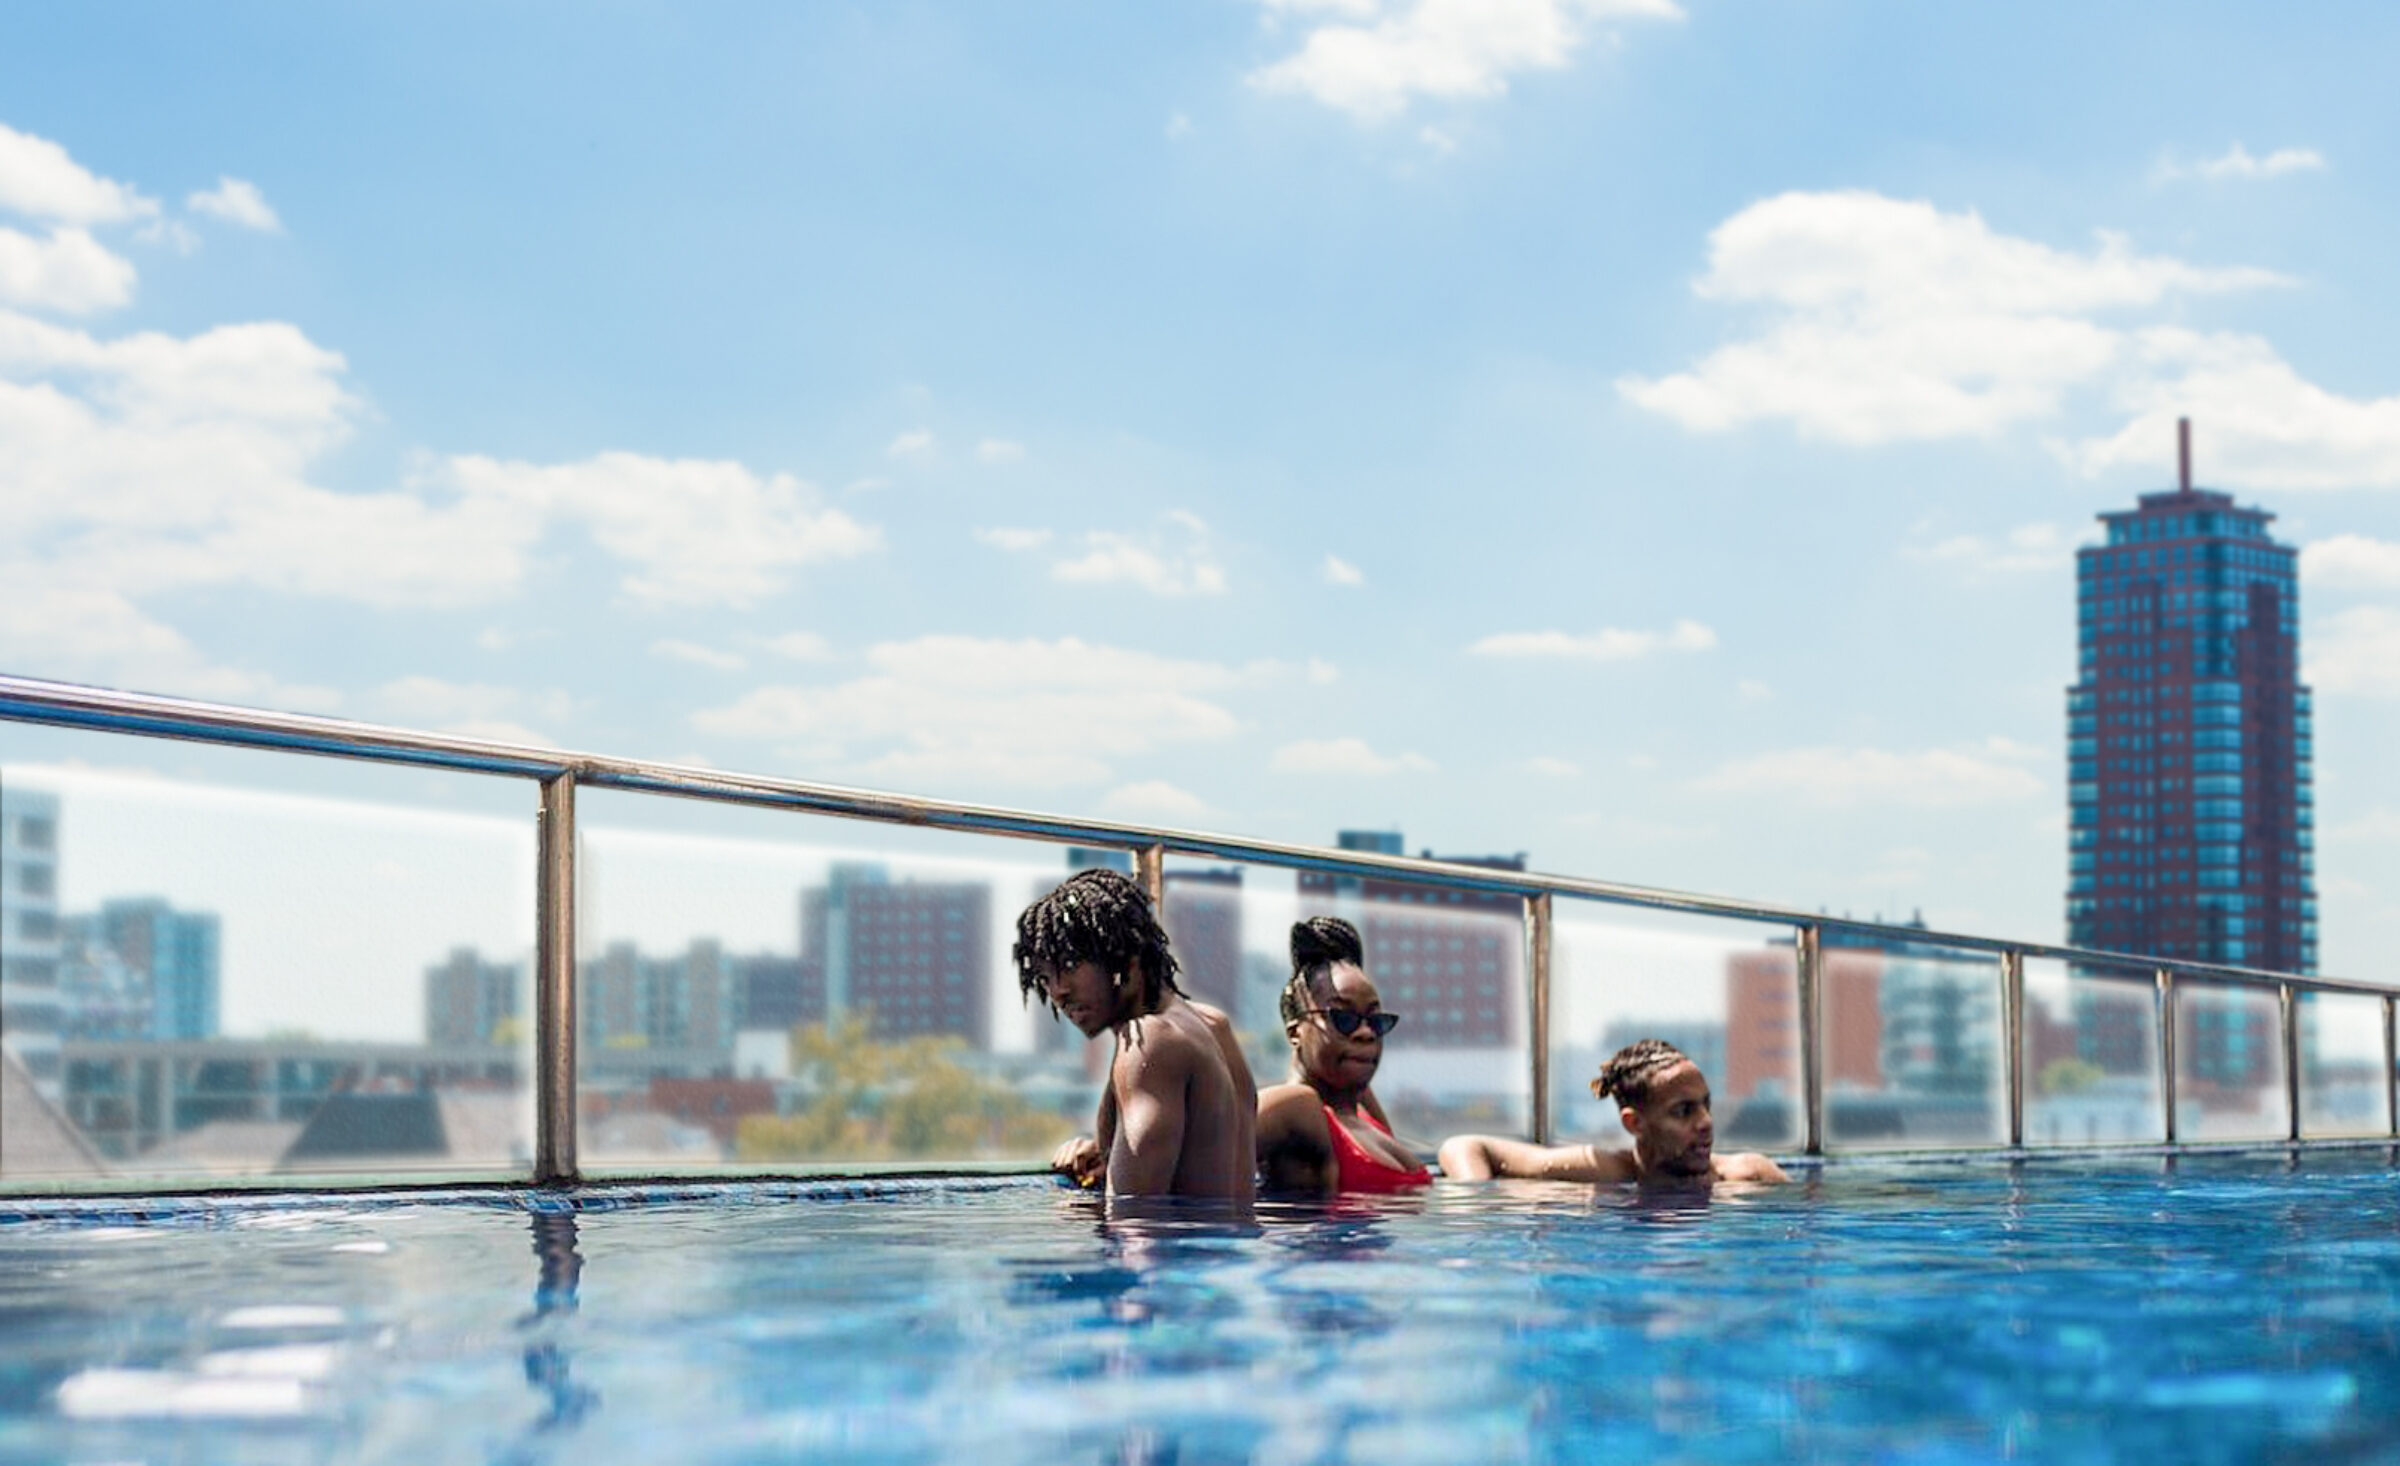 Neues hotel Enschede infinity pool